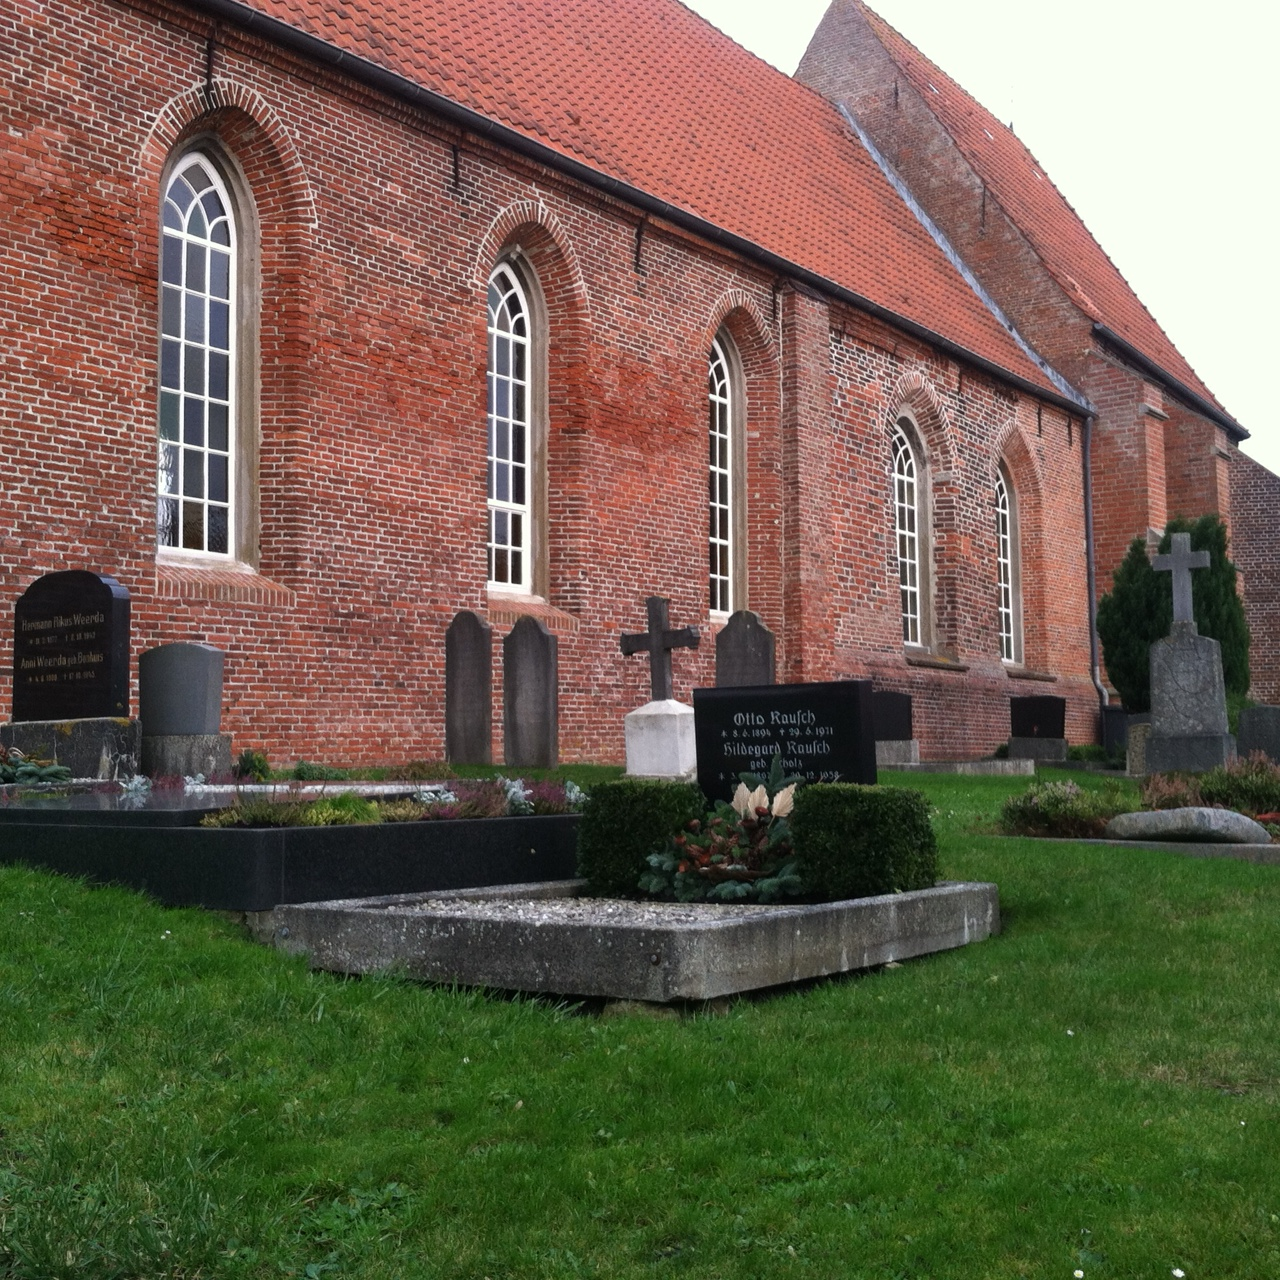 The Catholic church in Petkum, about one block from where my great-grandparents lived.